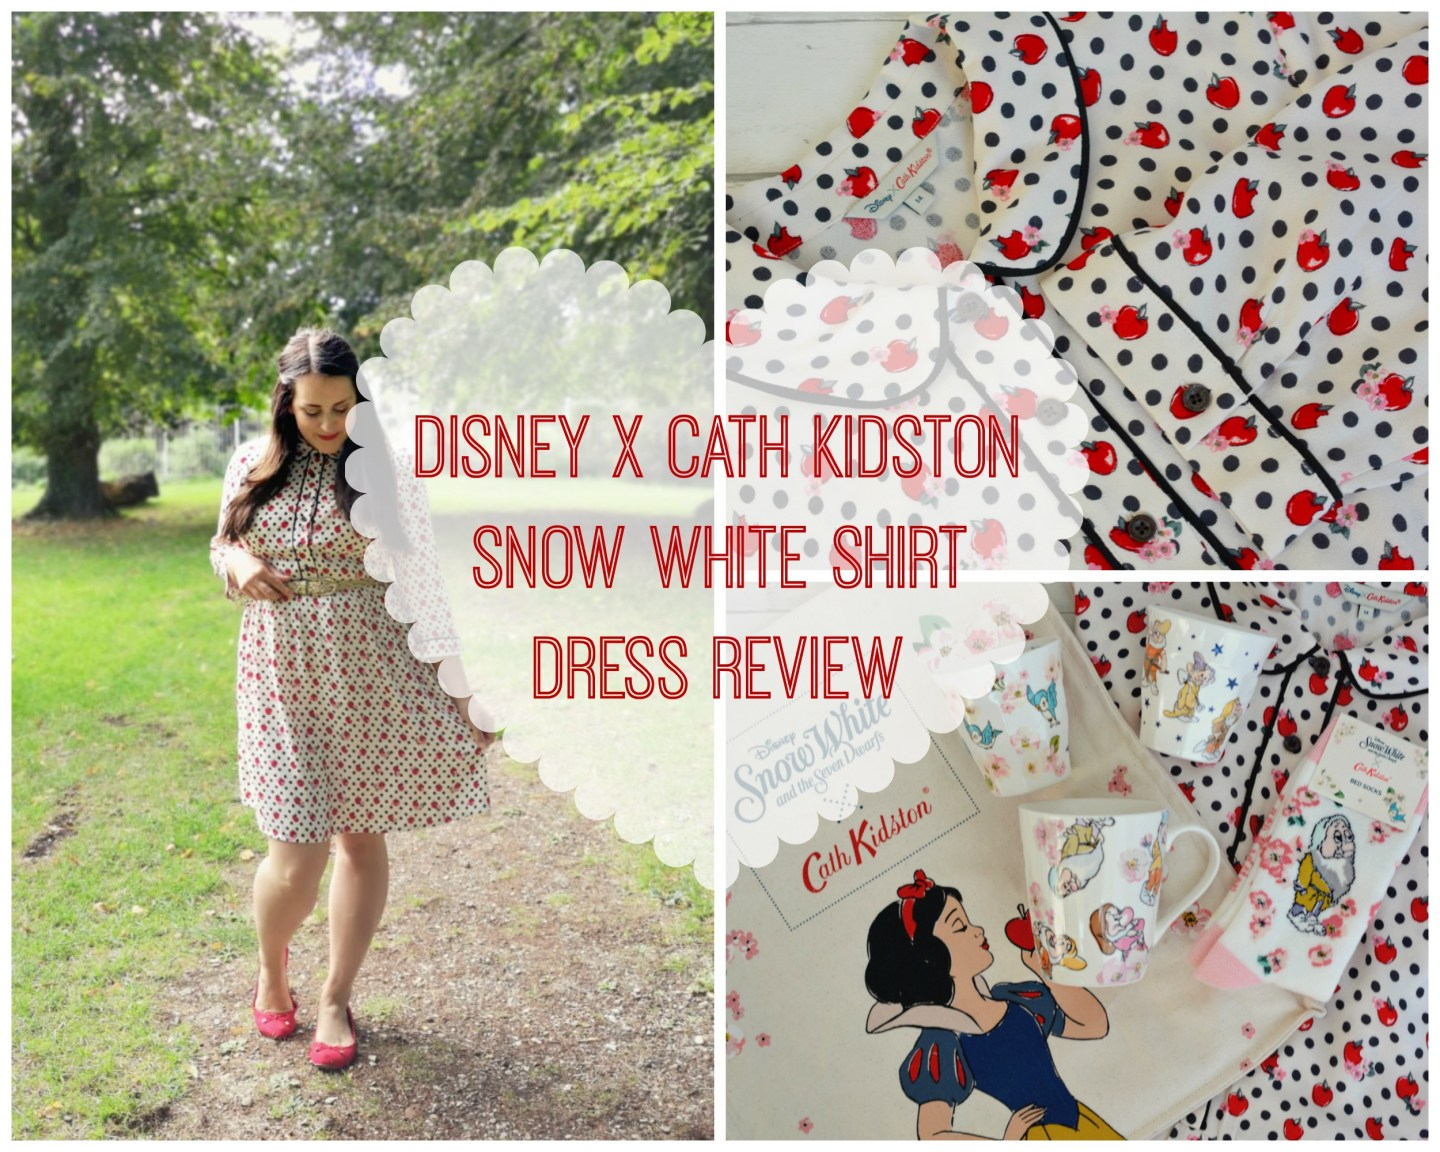 FASHION – The Fairest of Them All – Disney x Cath Kidston Snow White Shirt Dress Review